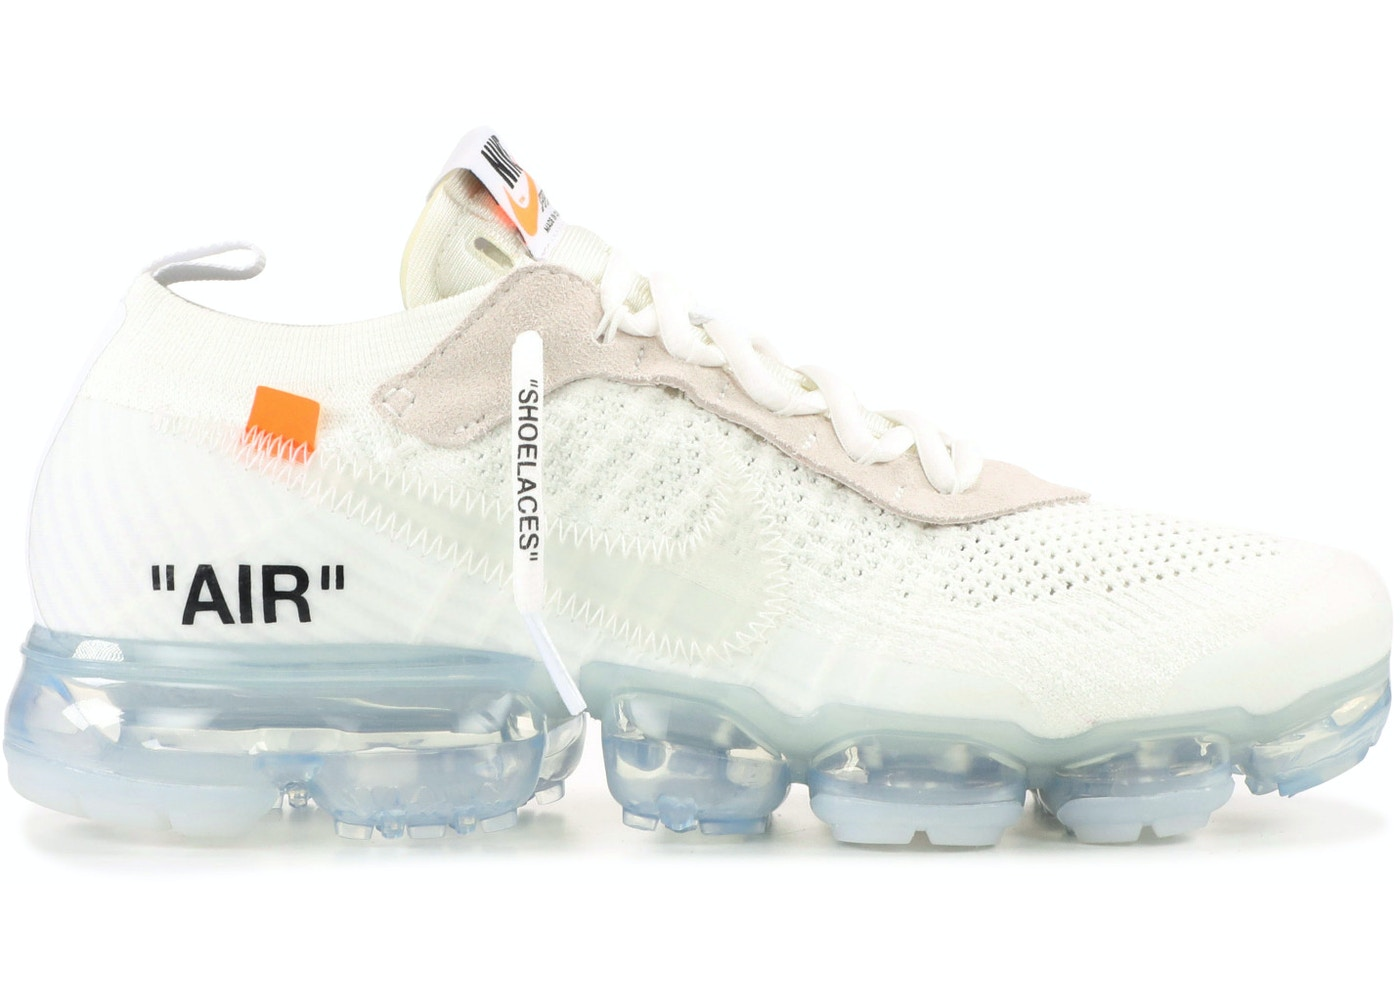 3f65e7b9 Air Vapormax Off White 2018 - AA3831-100